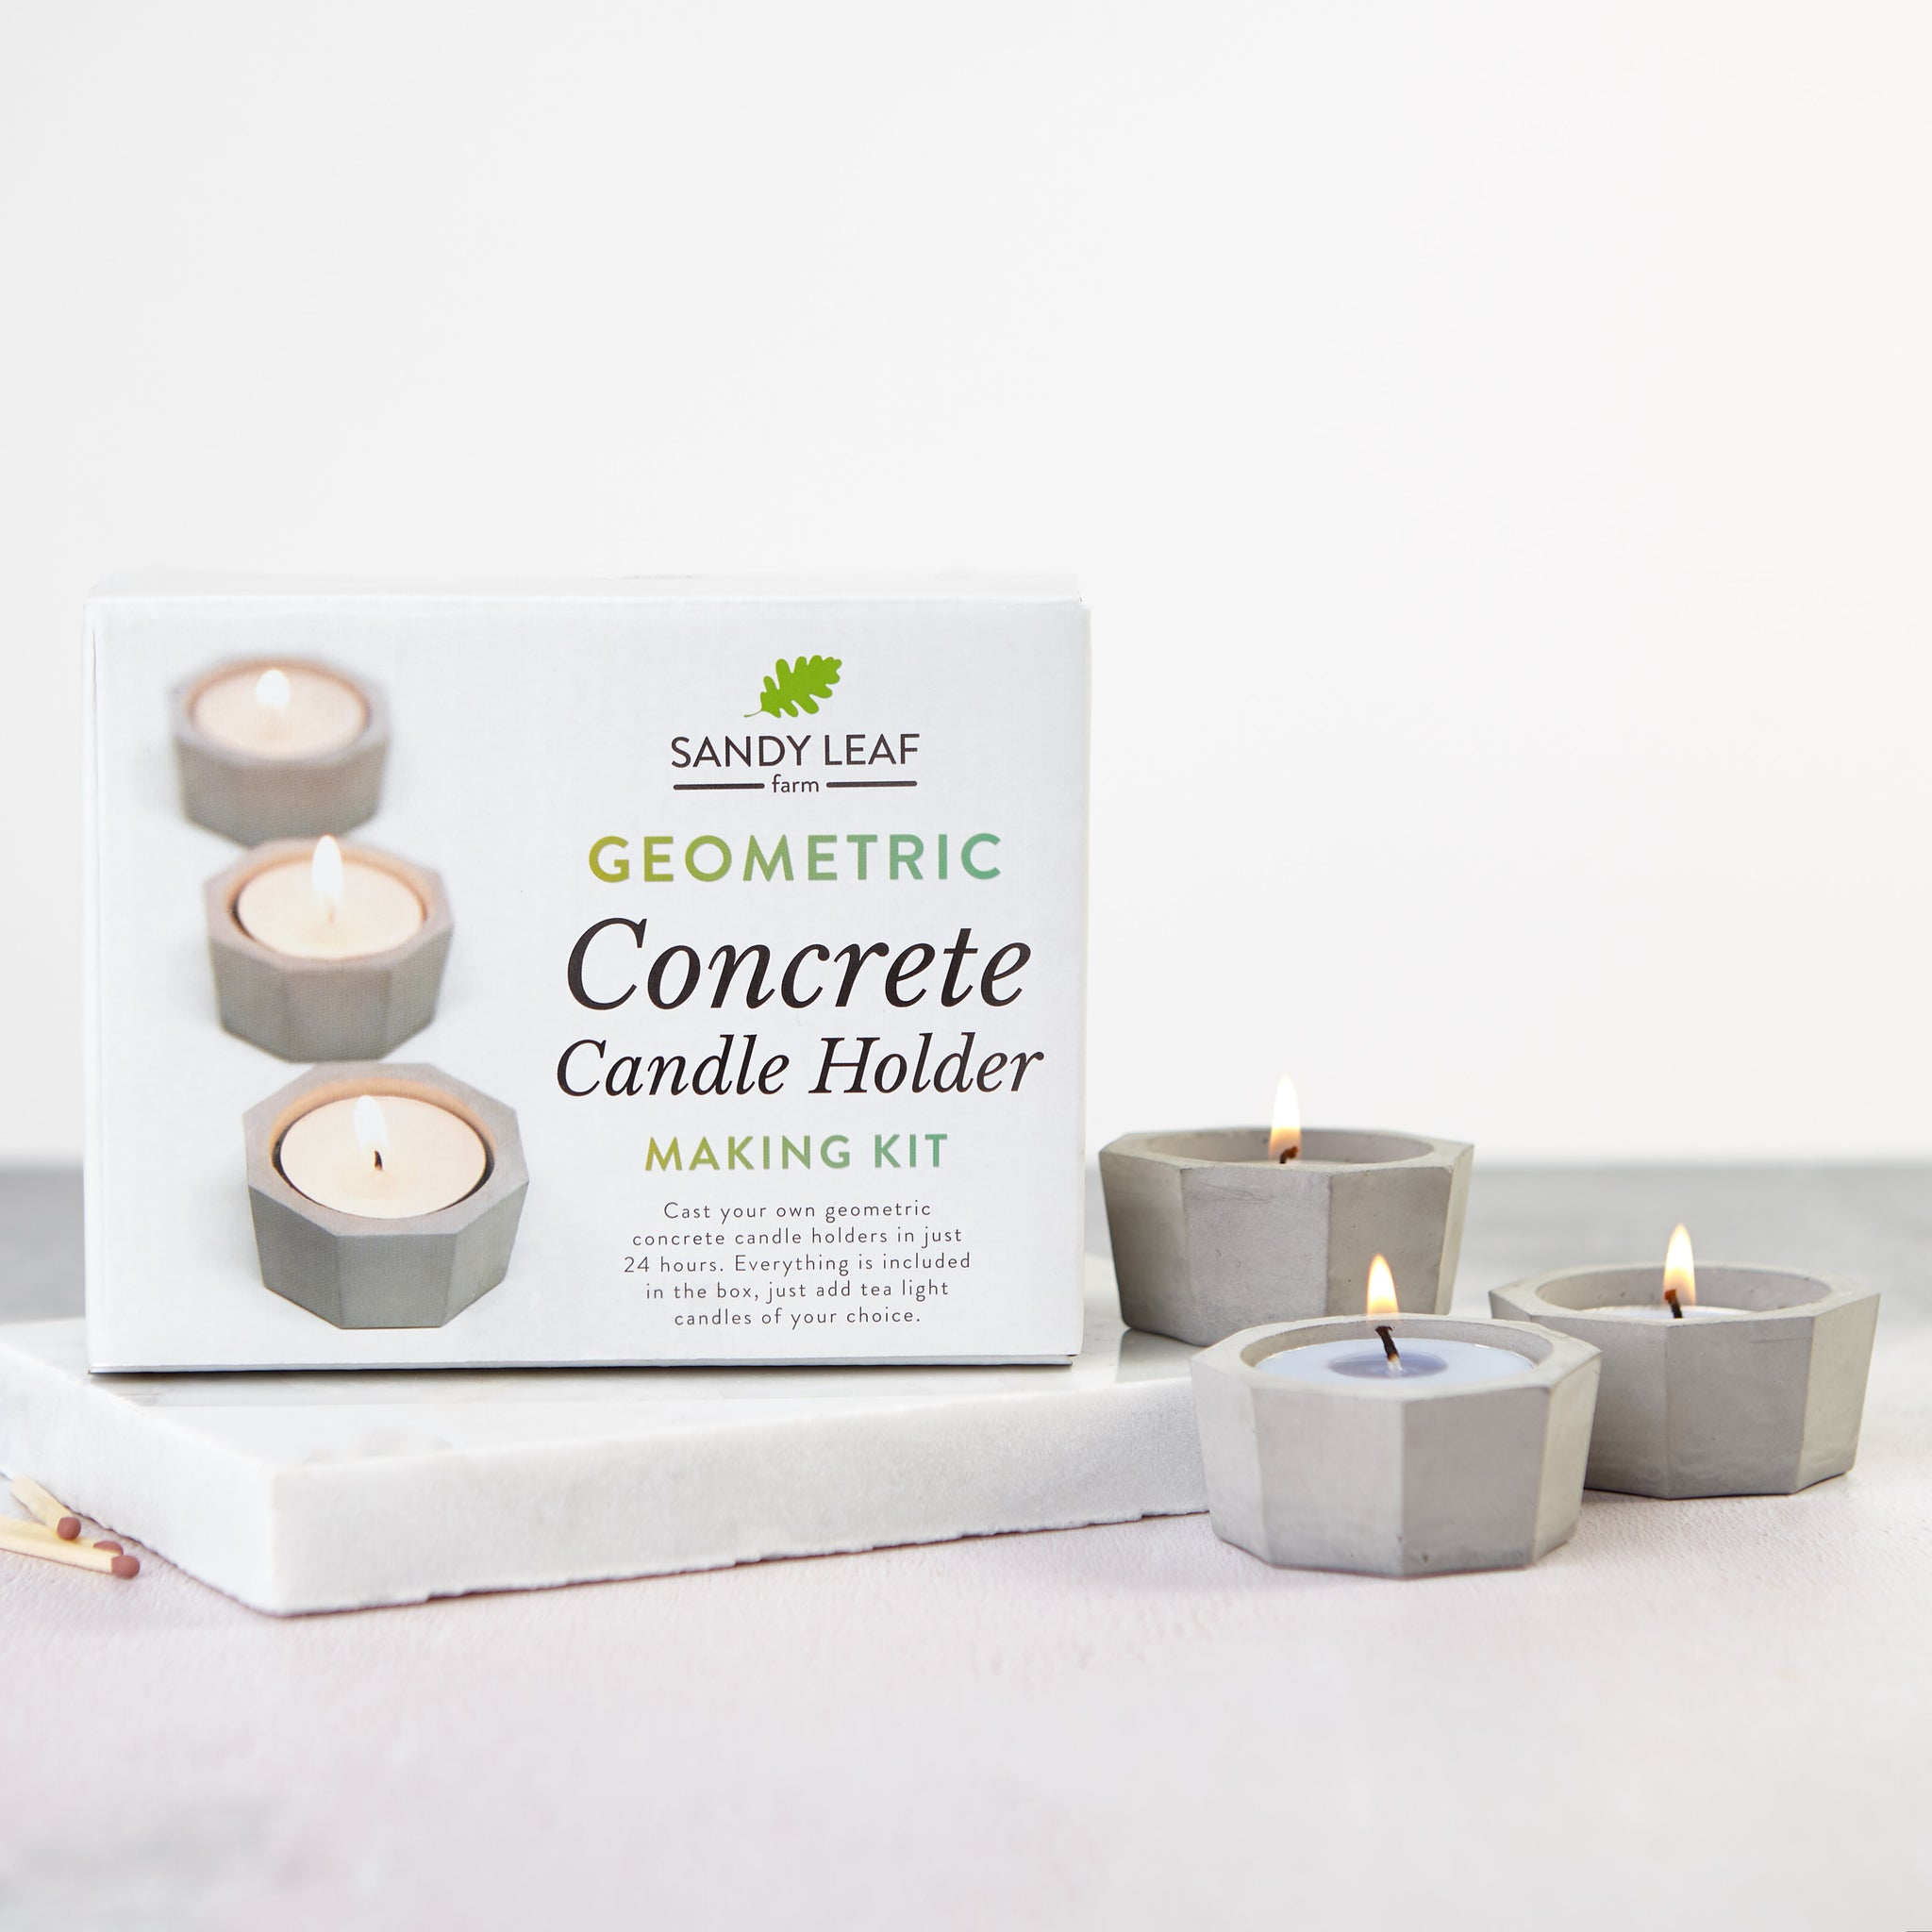 Geometric Concrete Candle Holder Making Kit Sandy Leaf Farm